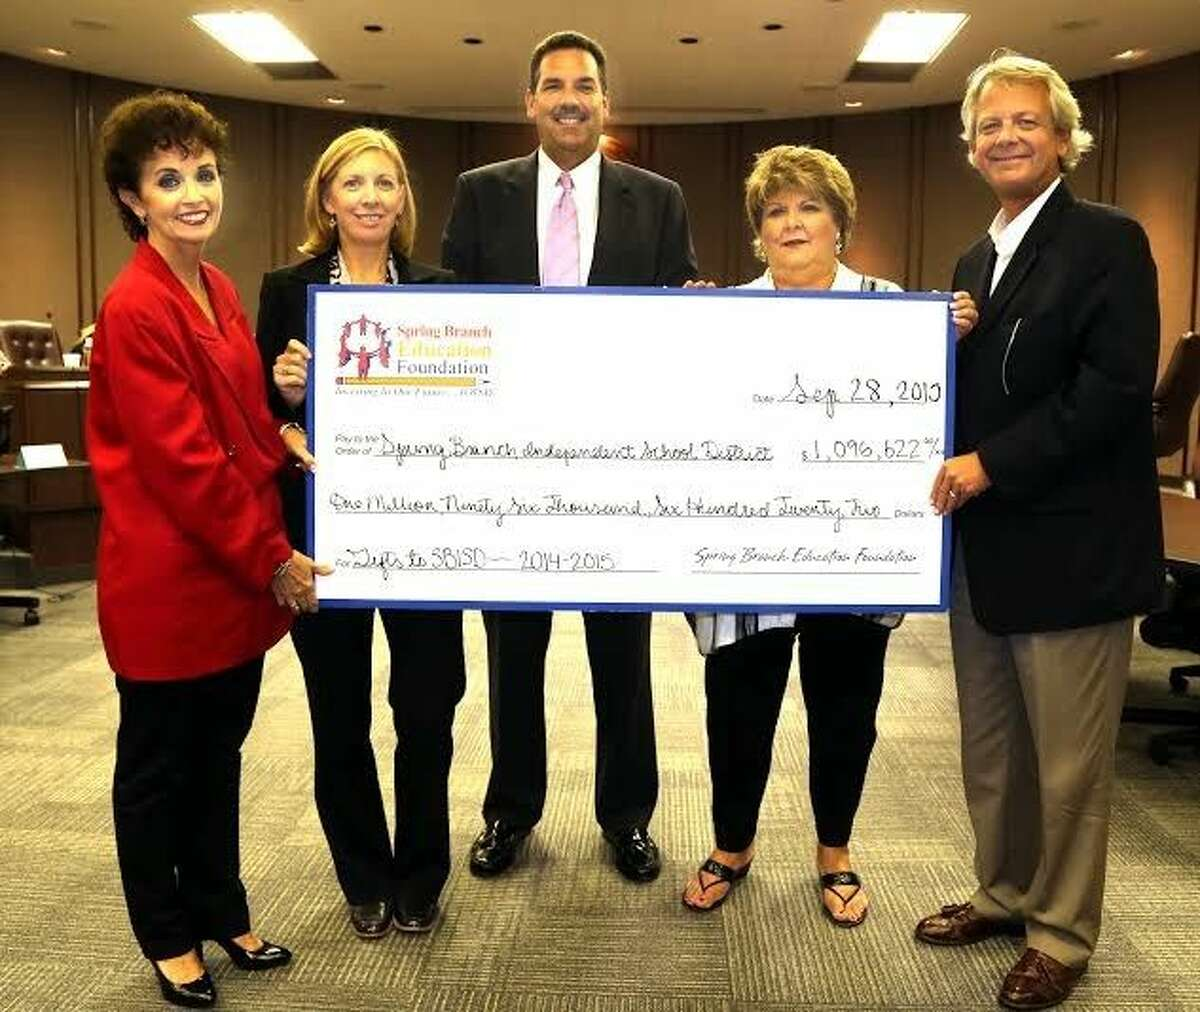 In 2014-15, SBEF donated more than $1 million to SBISD. The district's trustees unanimously approved a resolution expressing gratitude for the Foundation's service to the district. Lisa Schwartz, chair, SBEF Board; Chris Vierra, president, SBISD Board of Trustees; Dr. Scott R. Muri, superintendent, SBISD; Cece Thompson, executive director, SBEF; J. Carter Breed, SBEF board member.